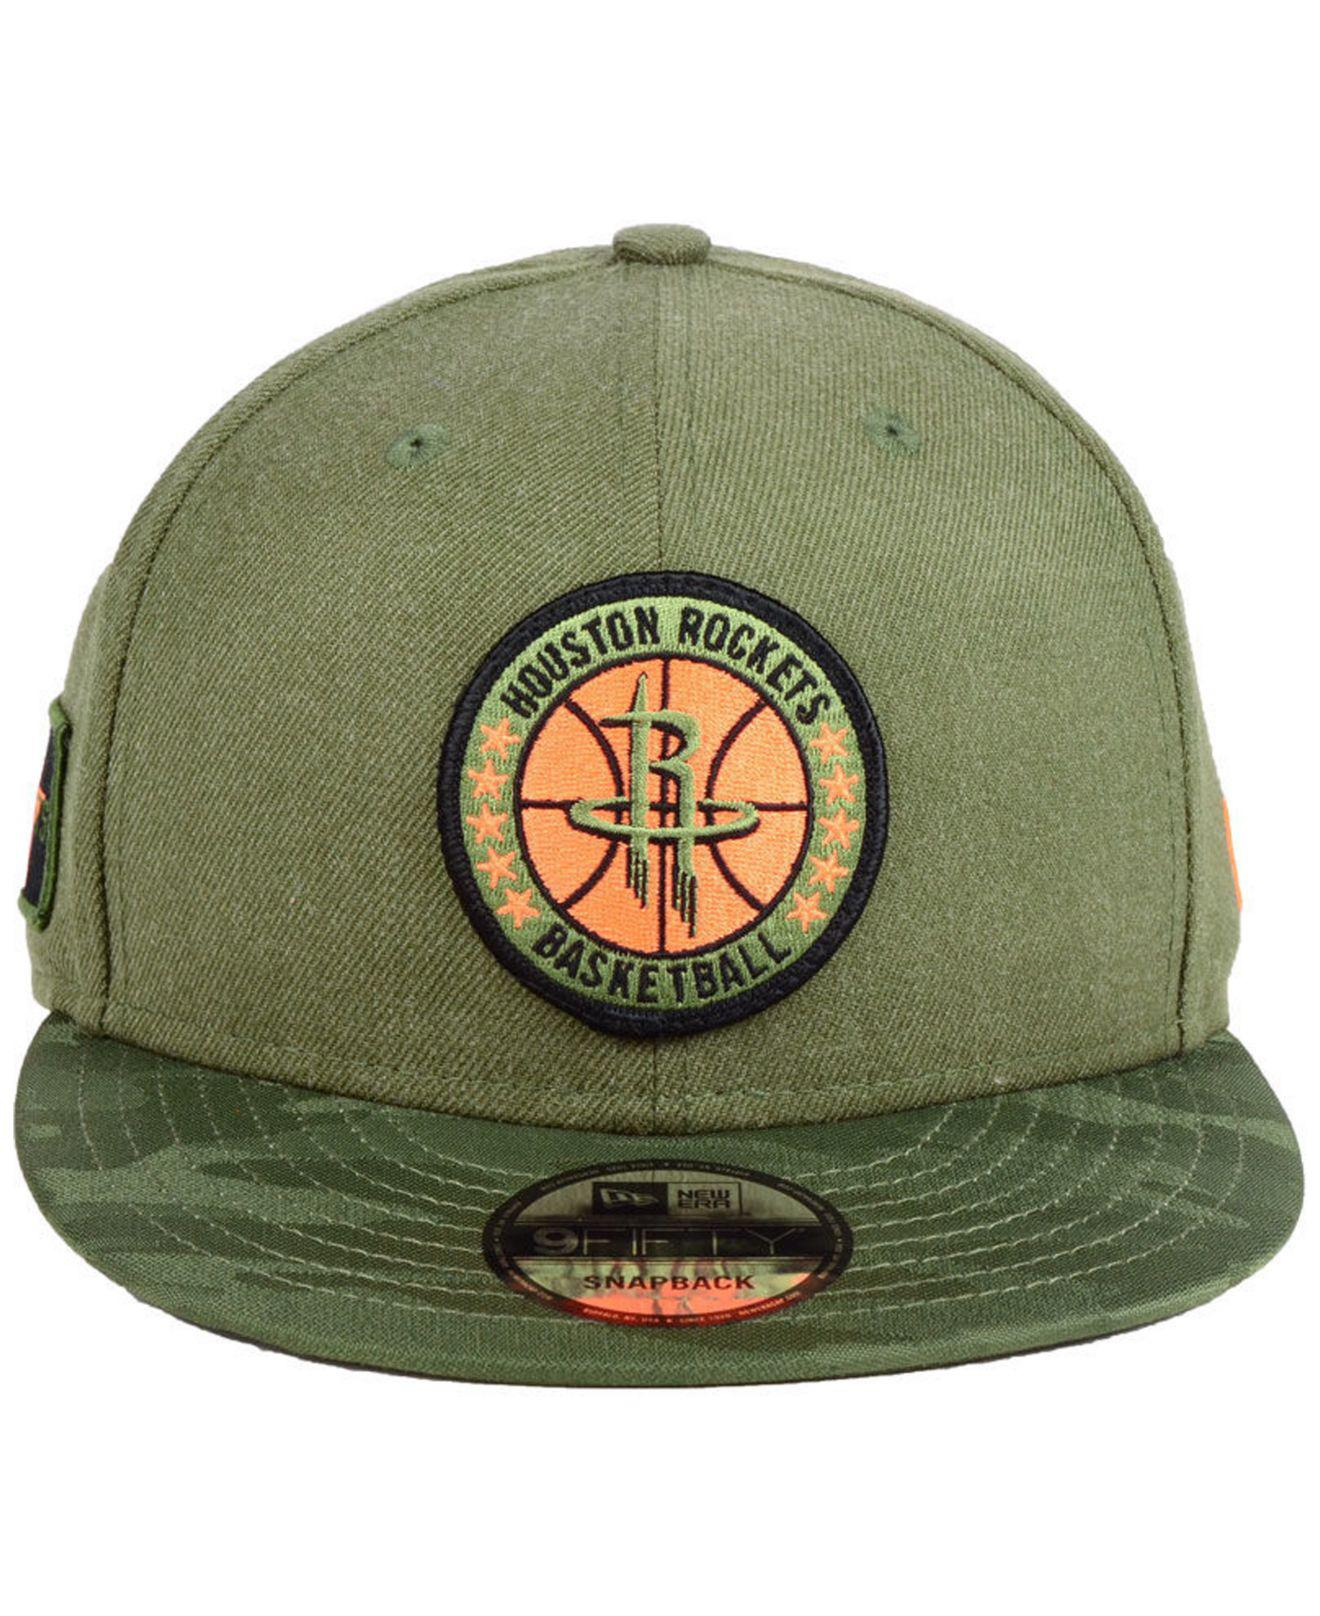 finest selection 2caf6 eab9a ... spain lyst ktz houston rockets tip off 9fifty snapback cap in green for  men 0924b bb349